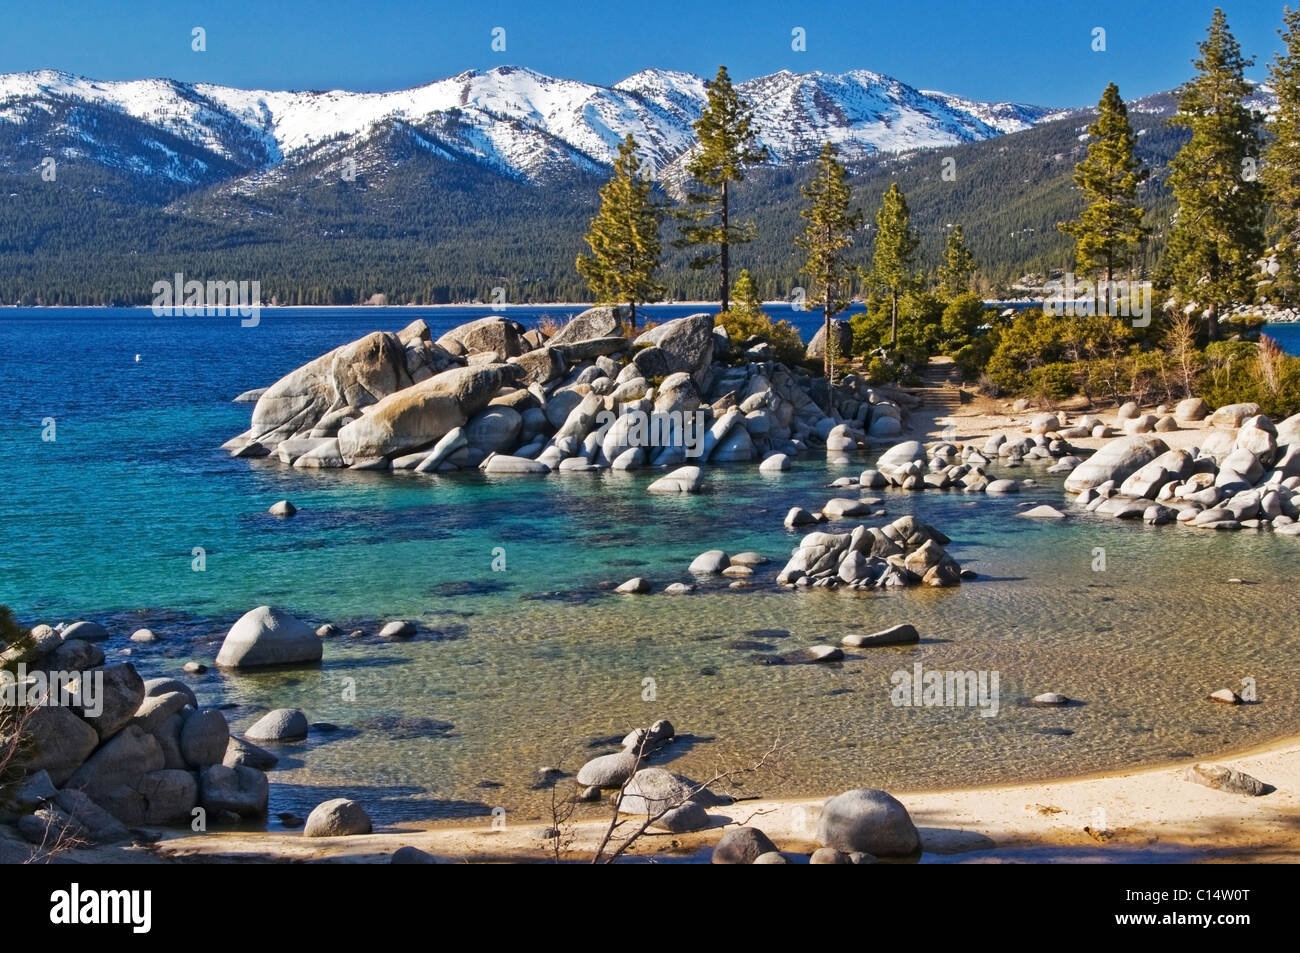 Divers Cove at Sand Harbor on the east shore of Lake Tahoe in the summer, NV - Stock Image